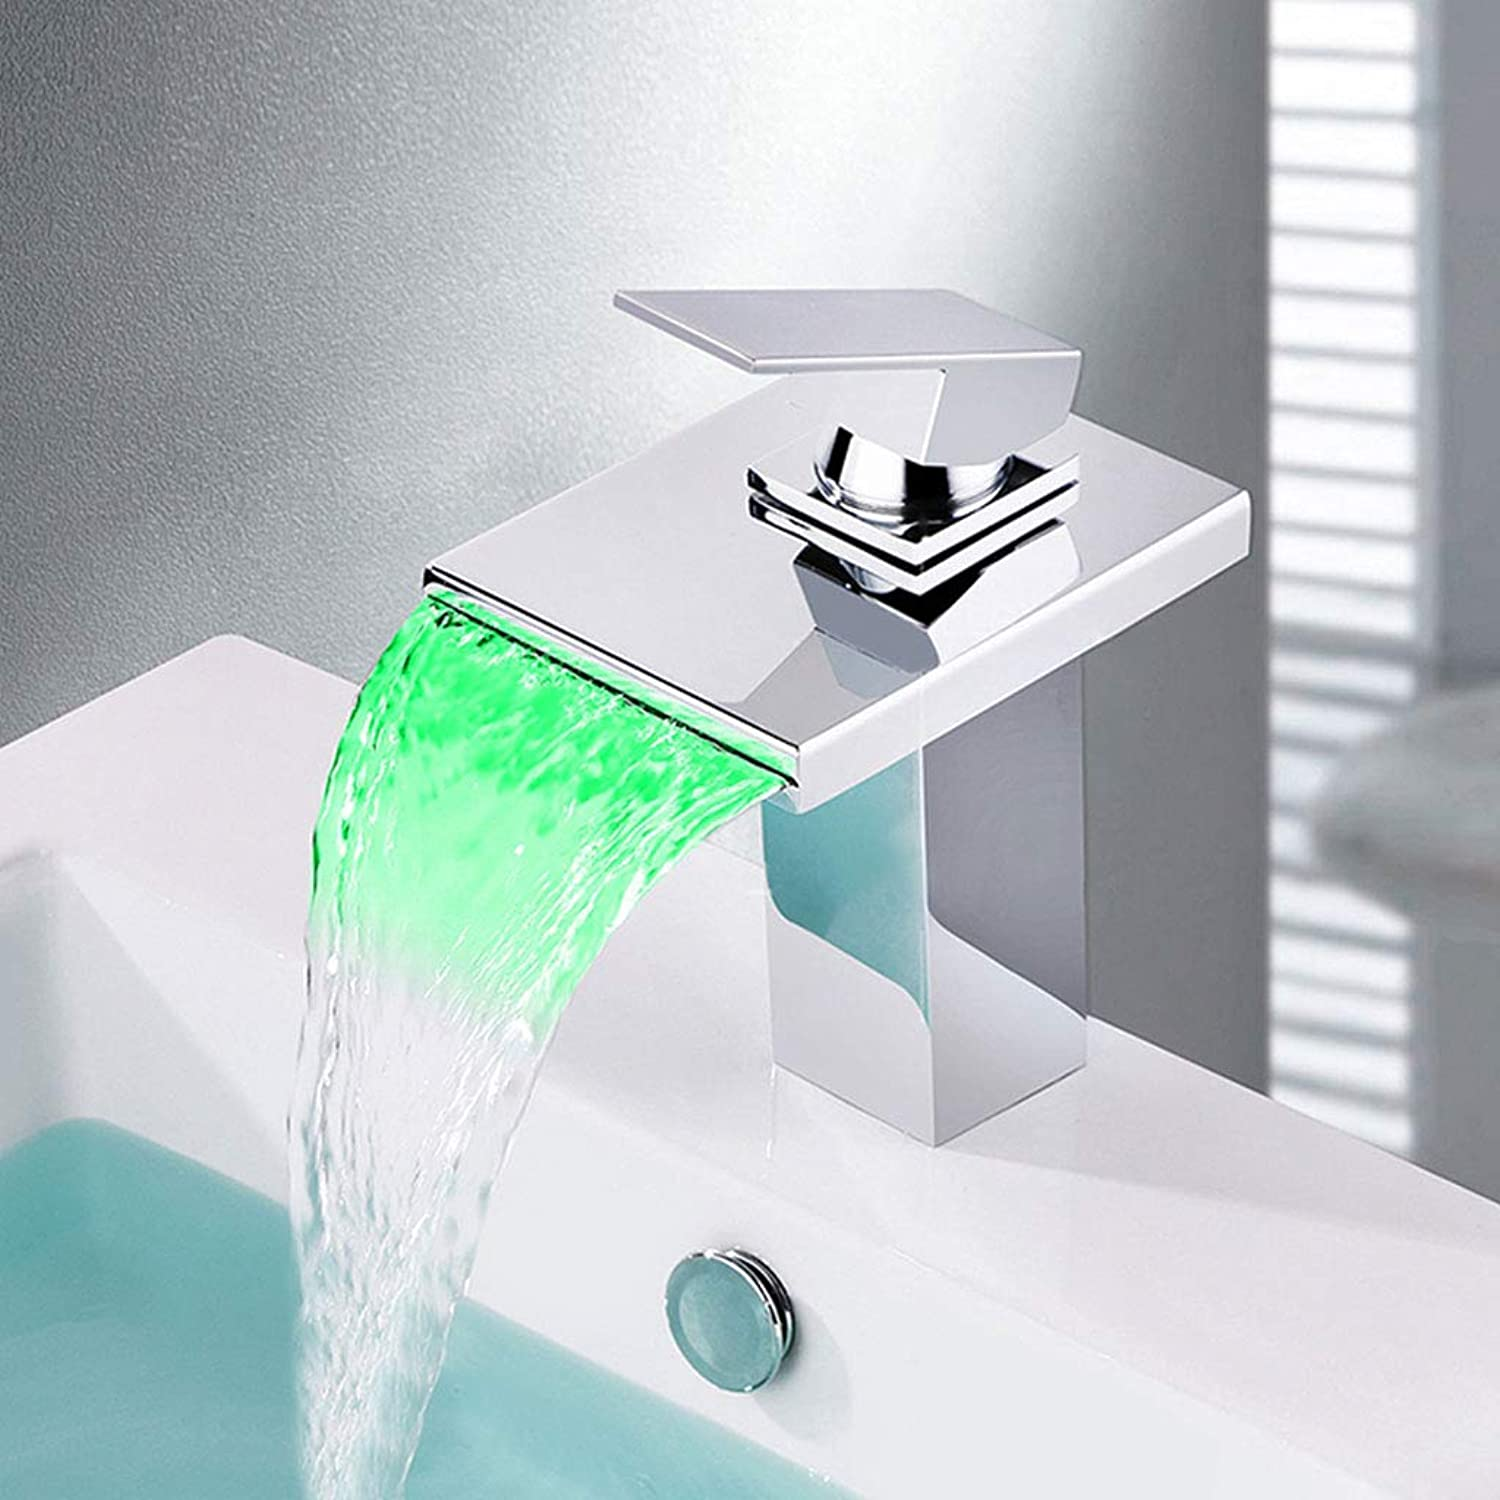 Faucet - LED temperature-controlled color changing faucet, waterfall chrome, suitable for kitchen bathroom hotel